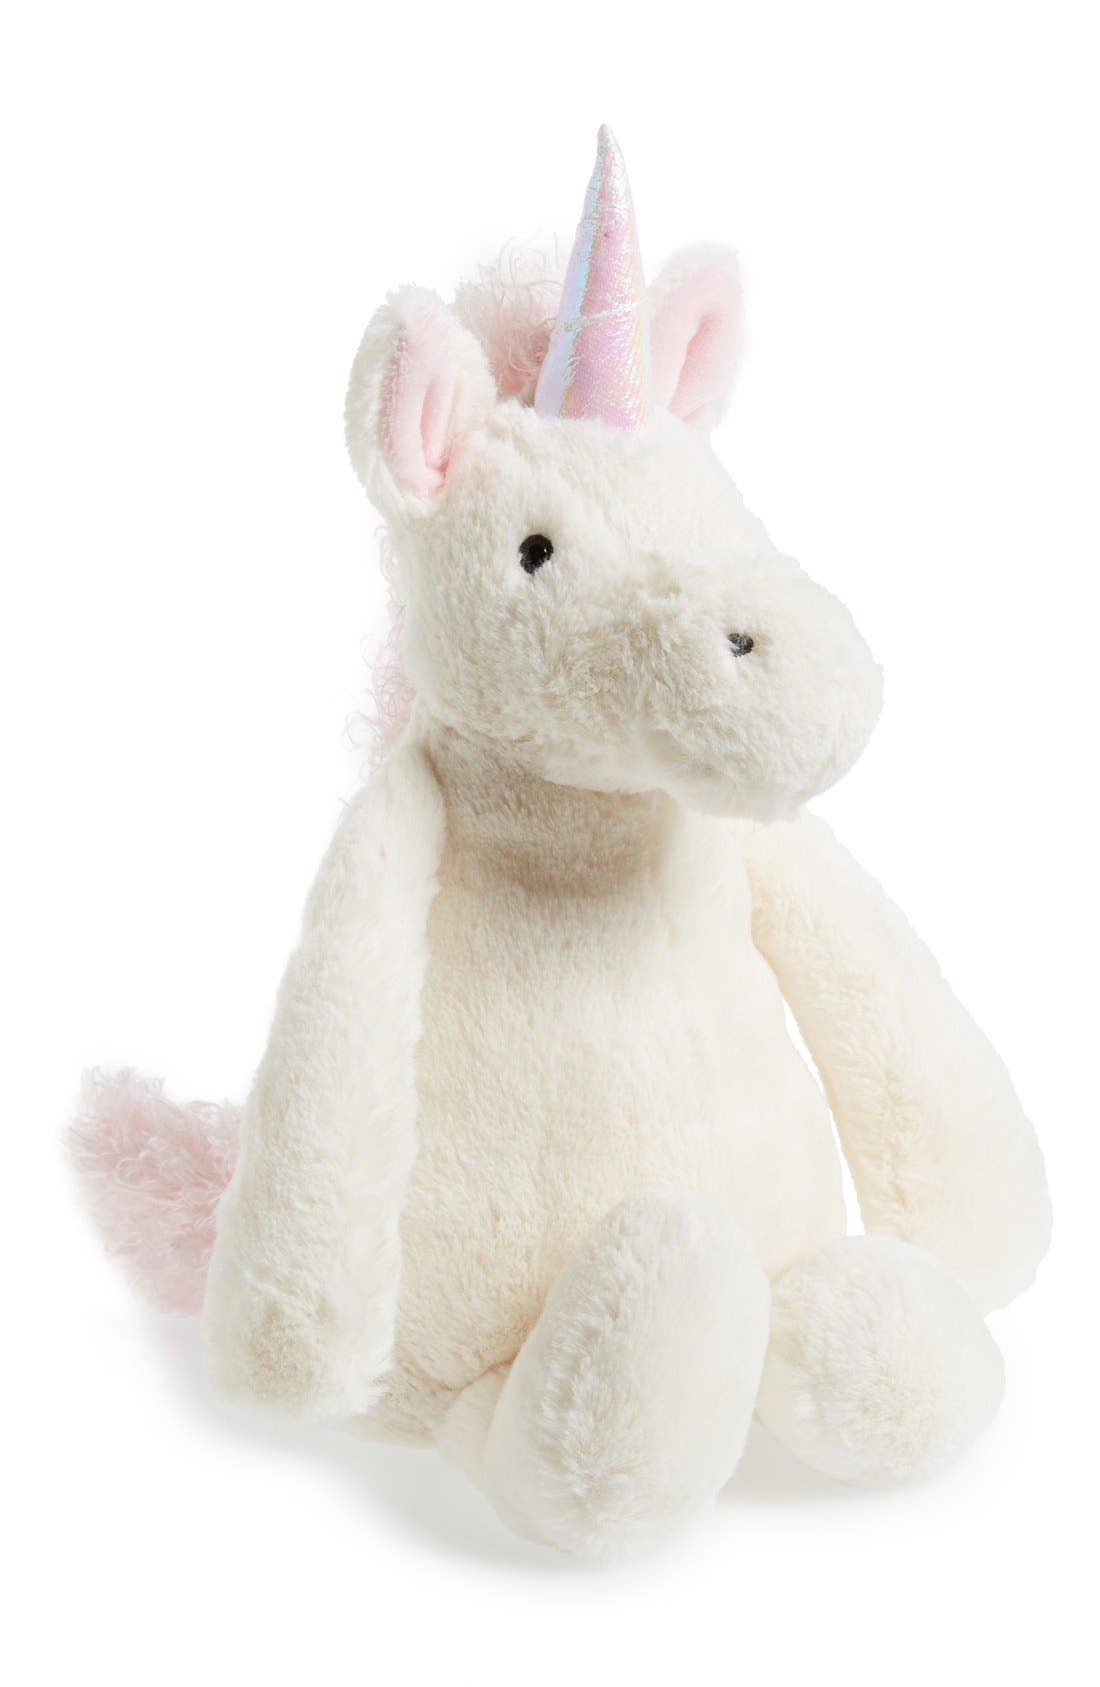 Main Image - Jellycat 'Bashful Unicorn' Stuffed Animal